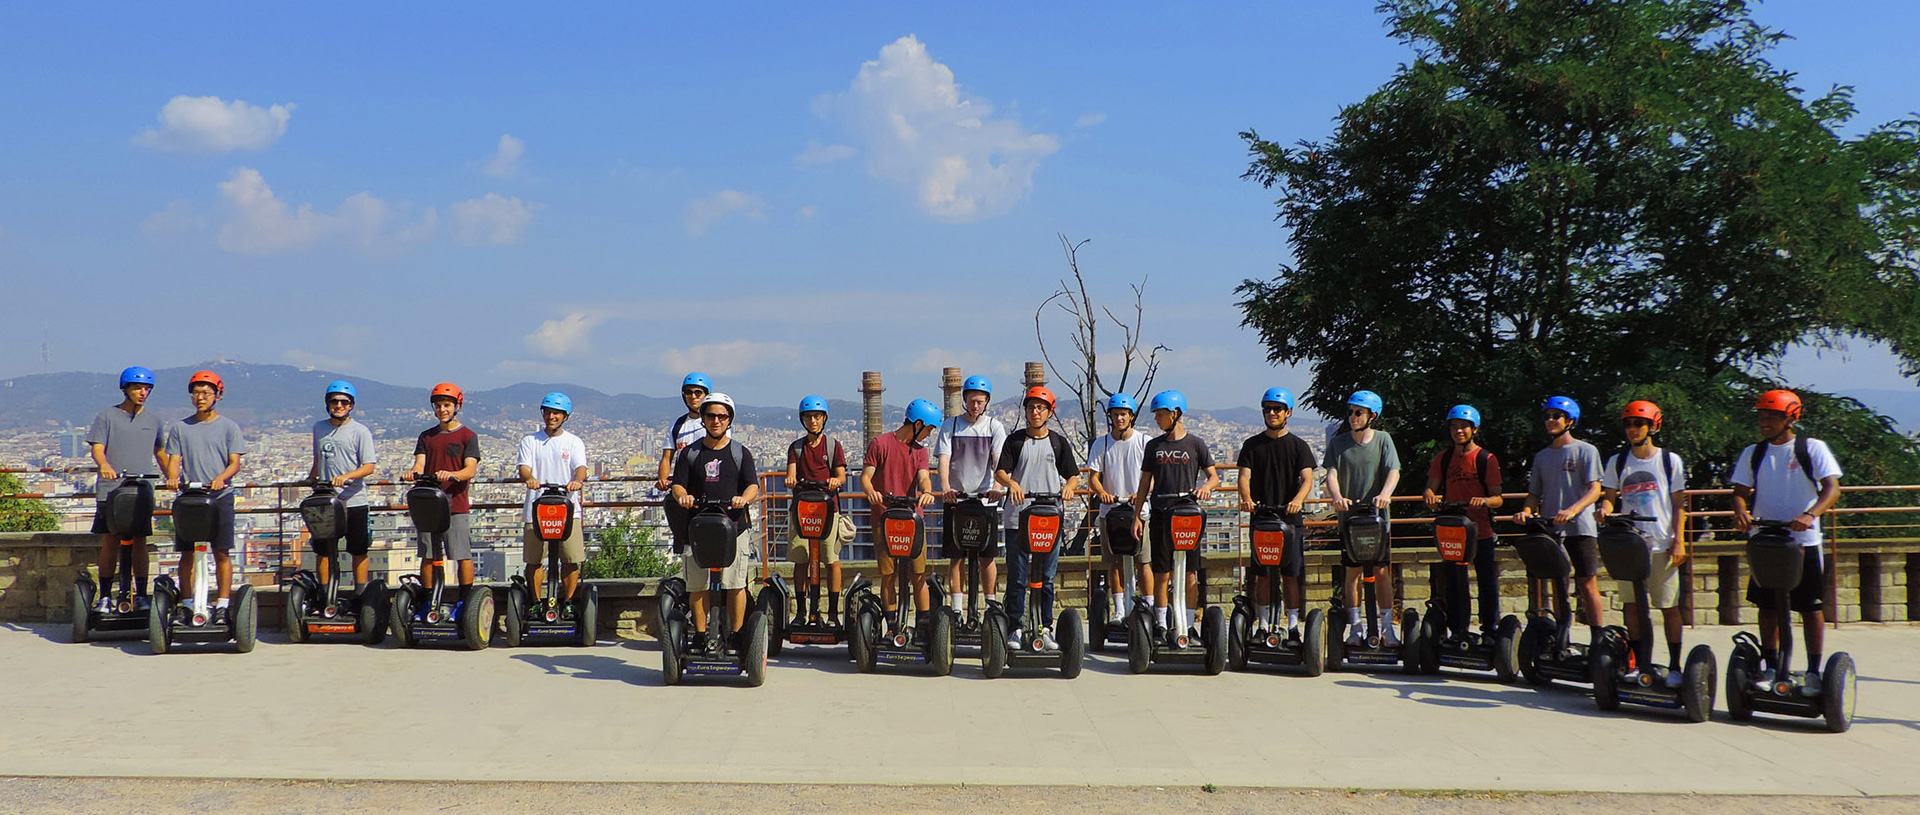 Montjuic segway tour in Barcelona two hours